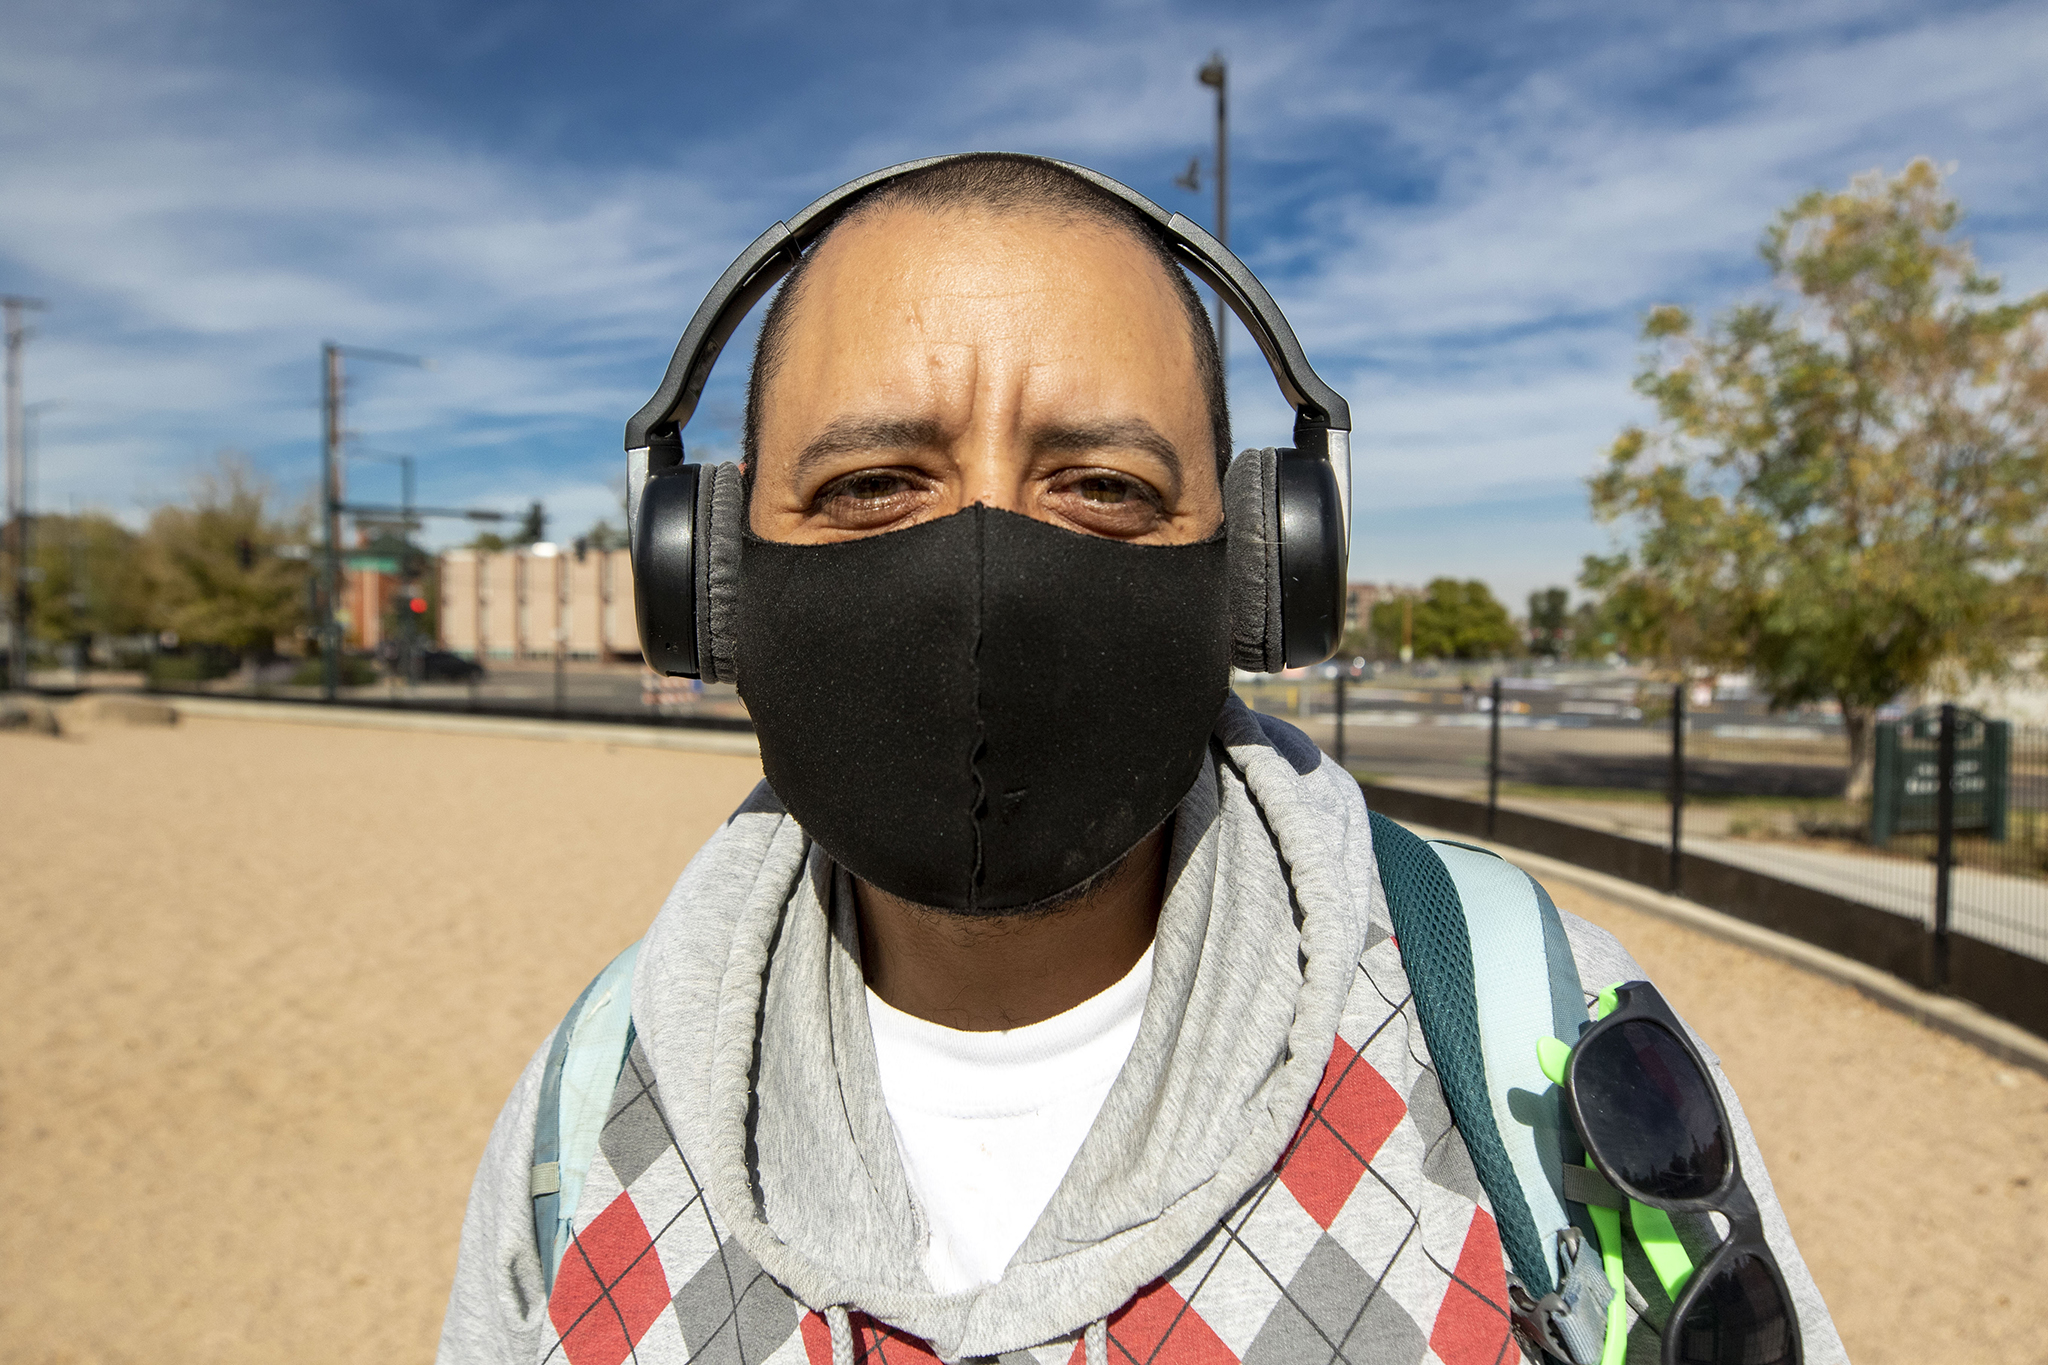 Che Luera was already wearing a mask outside when Denver's tighter rules on face coverings was announced. Oct. 16, 2020.